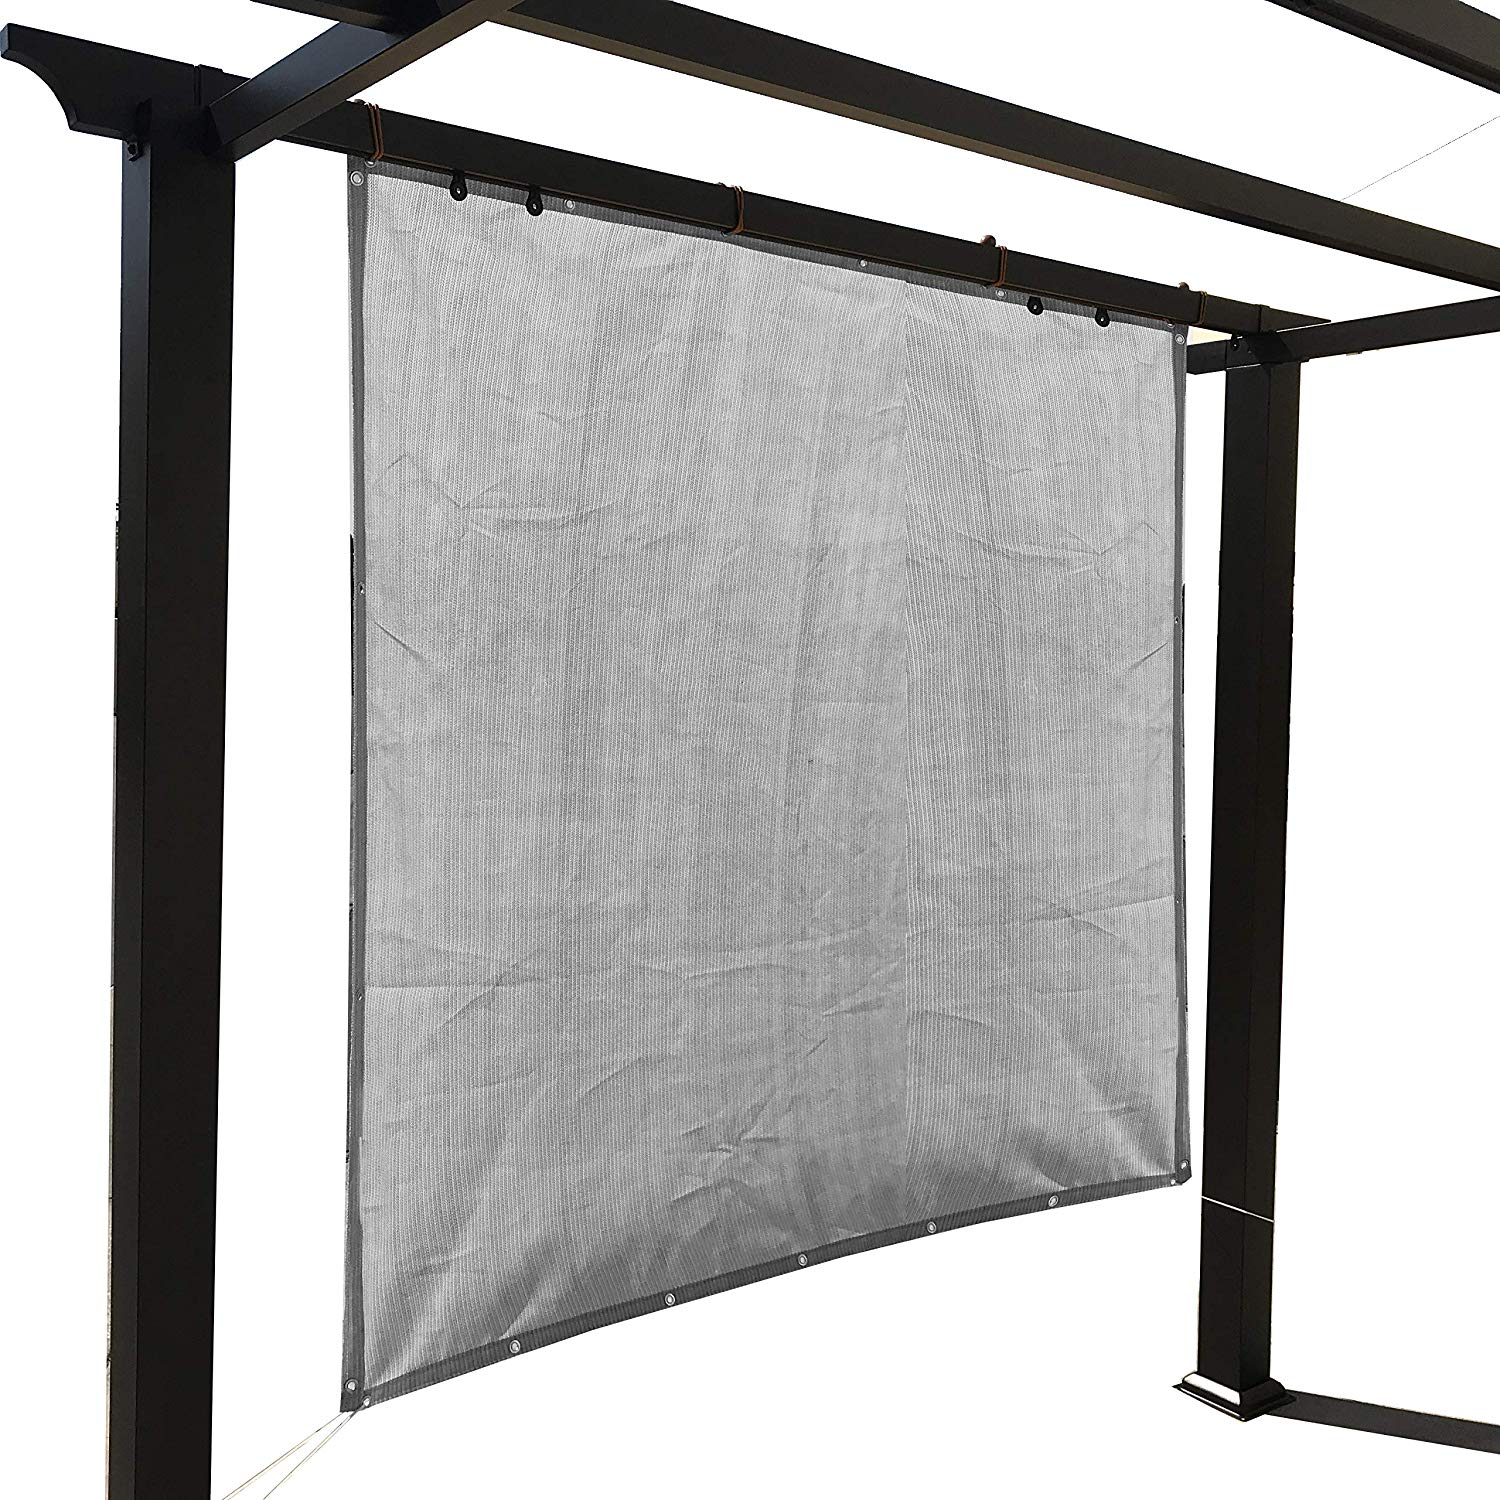 Sand Sun Shade Privacy Panel with Grommets on 4 Sides for Patio, Awning, Window, Pergola or Gazebo 10' x 6'